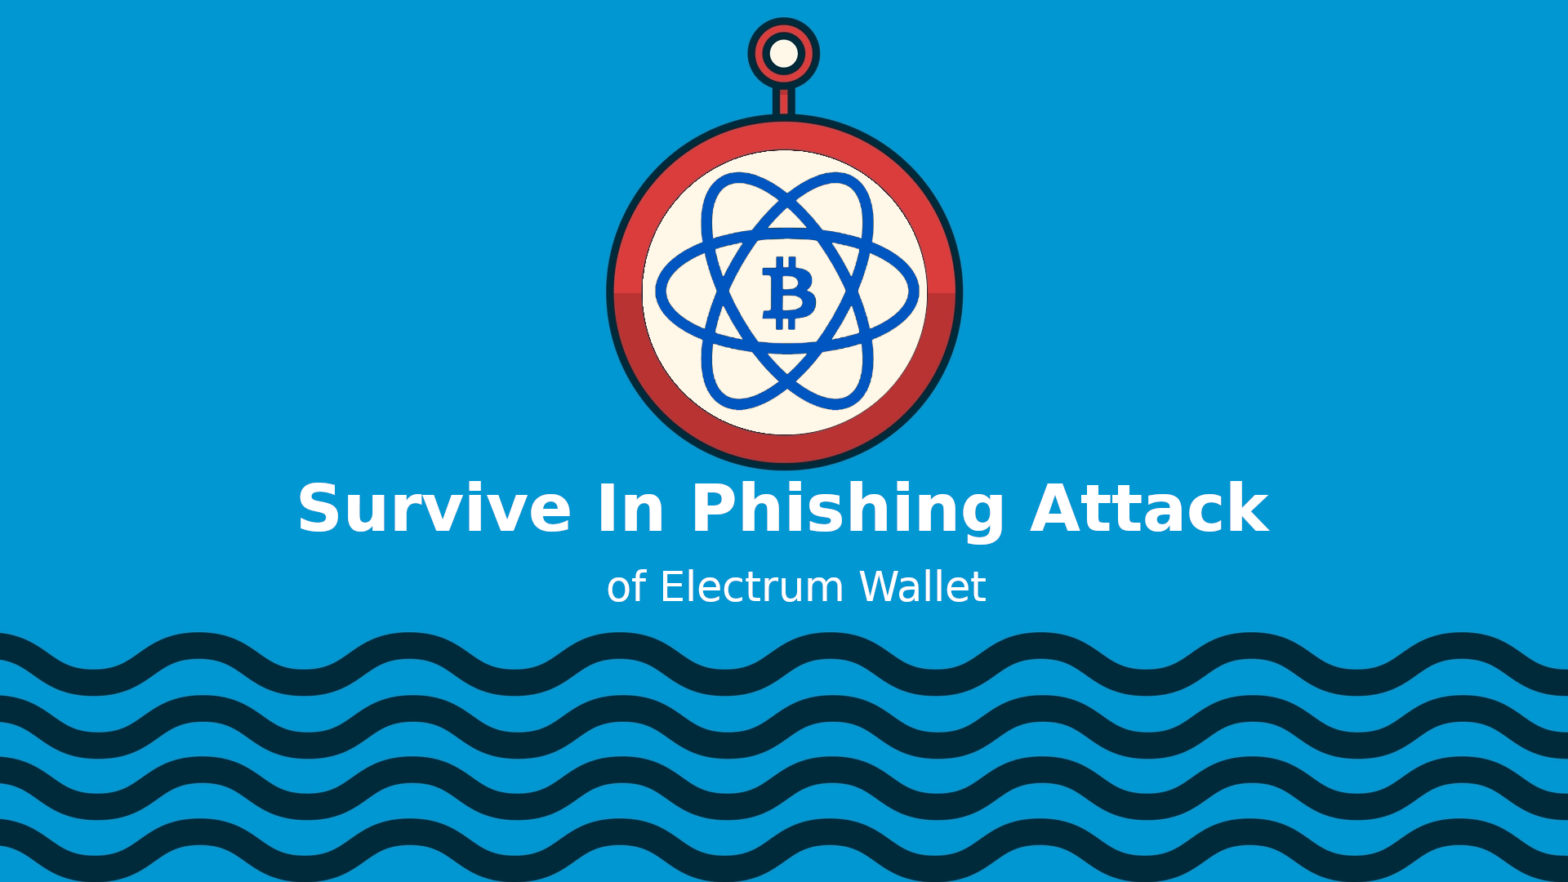 Survive in phishing attack of Electrum wallet